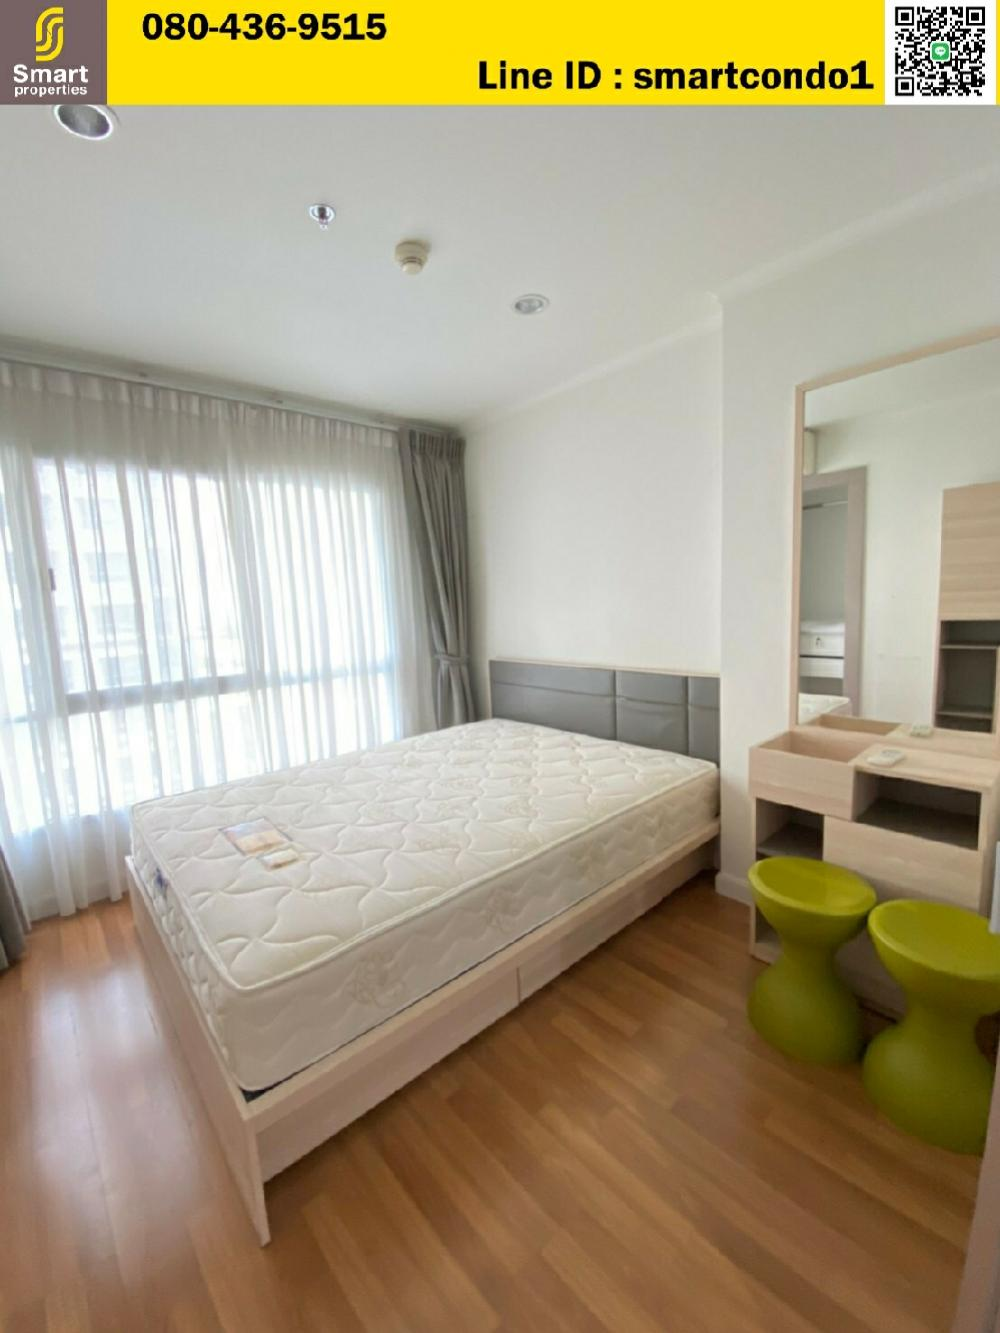 For RentCondoRama3 (Riverside),Satupadit : For rent, Lumpini Park Riverside-Rama 3, 1 bedroom, 1 bathroom ** River view and pool ** Furniture and electrical appliances complete 28 sqm.